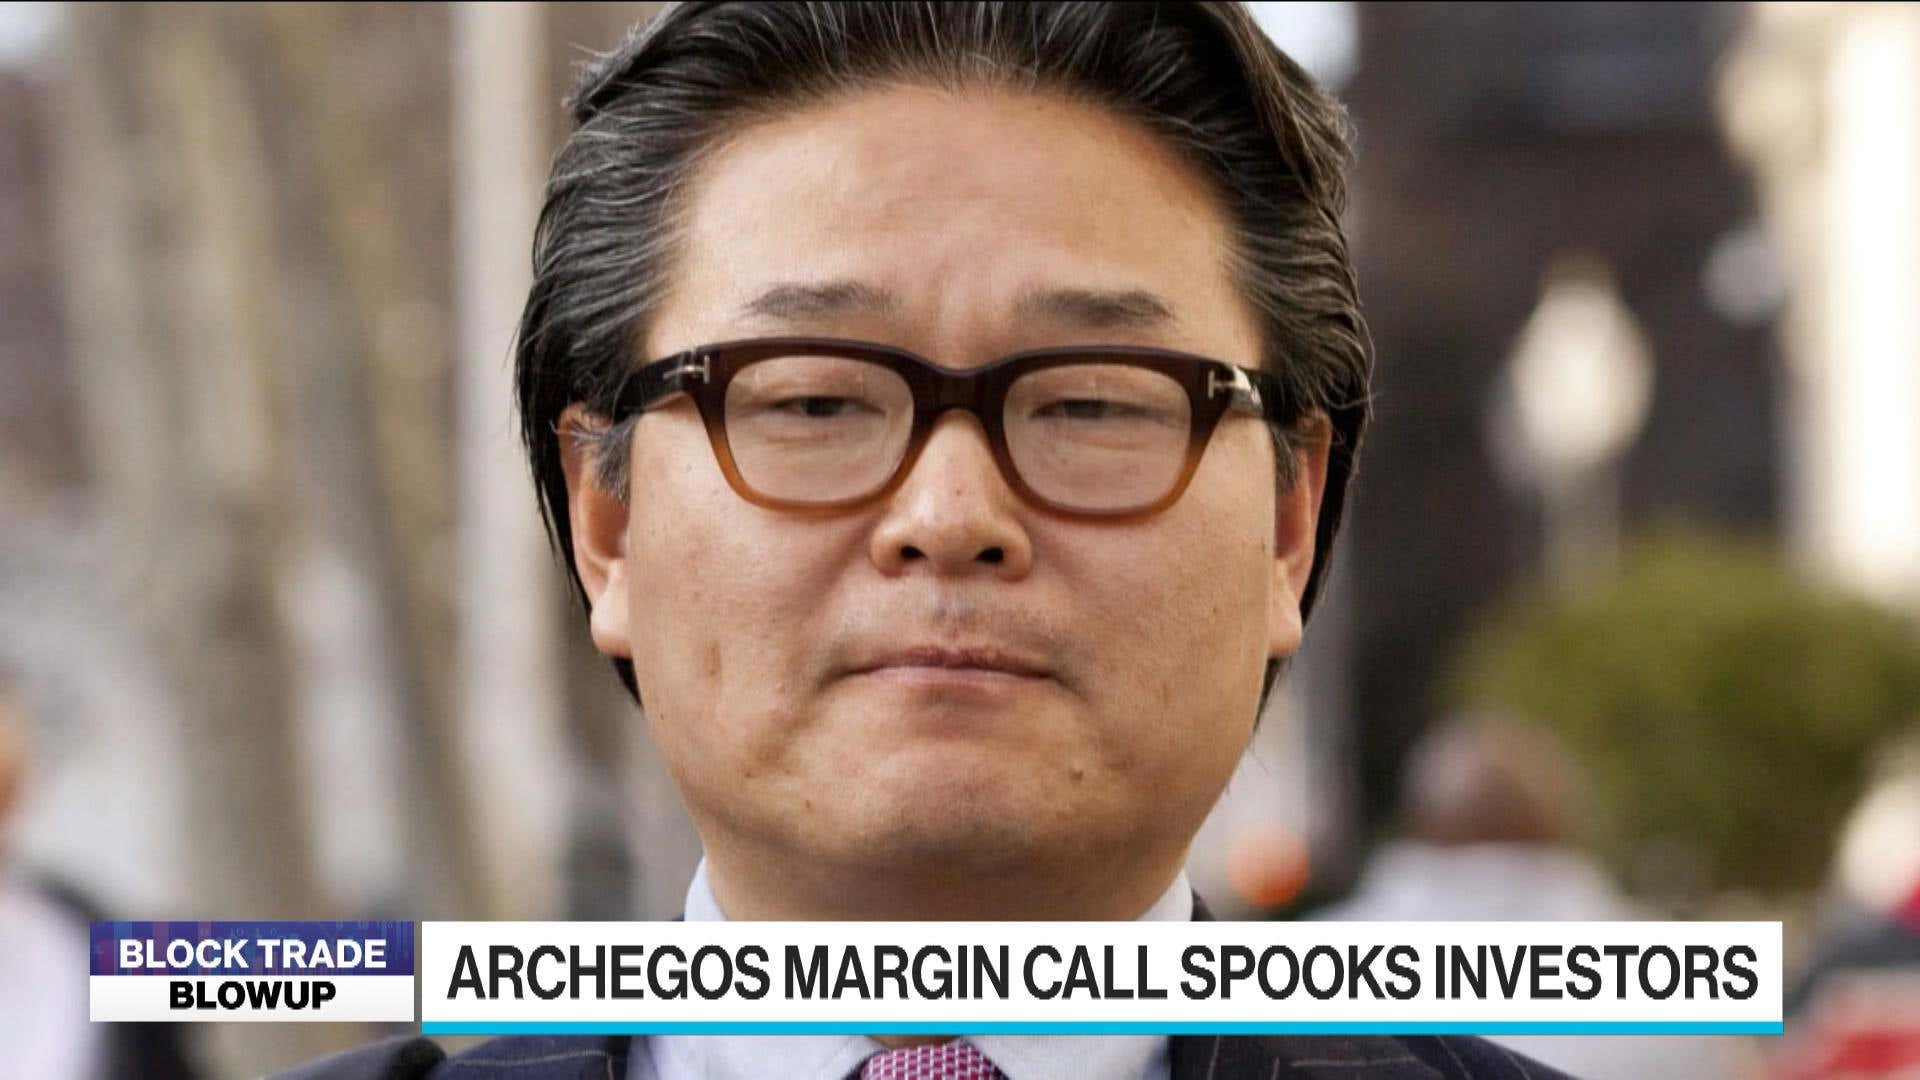 Archegos Capital Blowup: What Investors Need to Know - Bloomberg